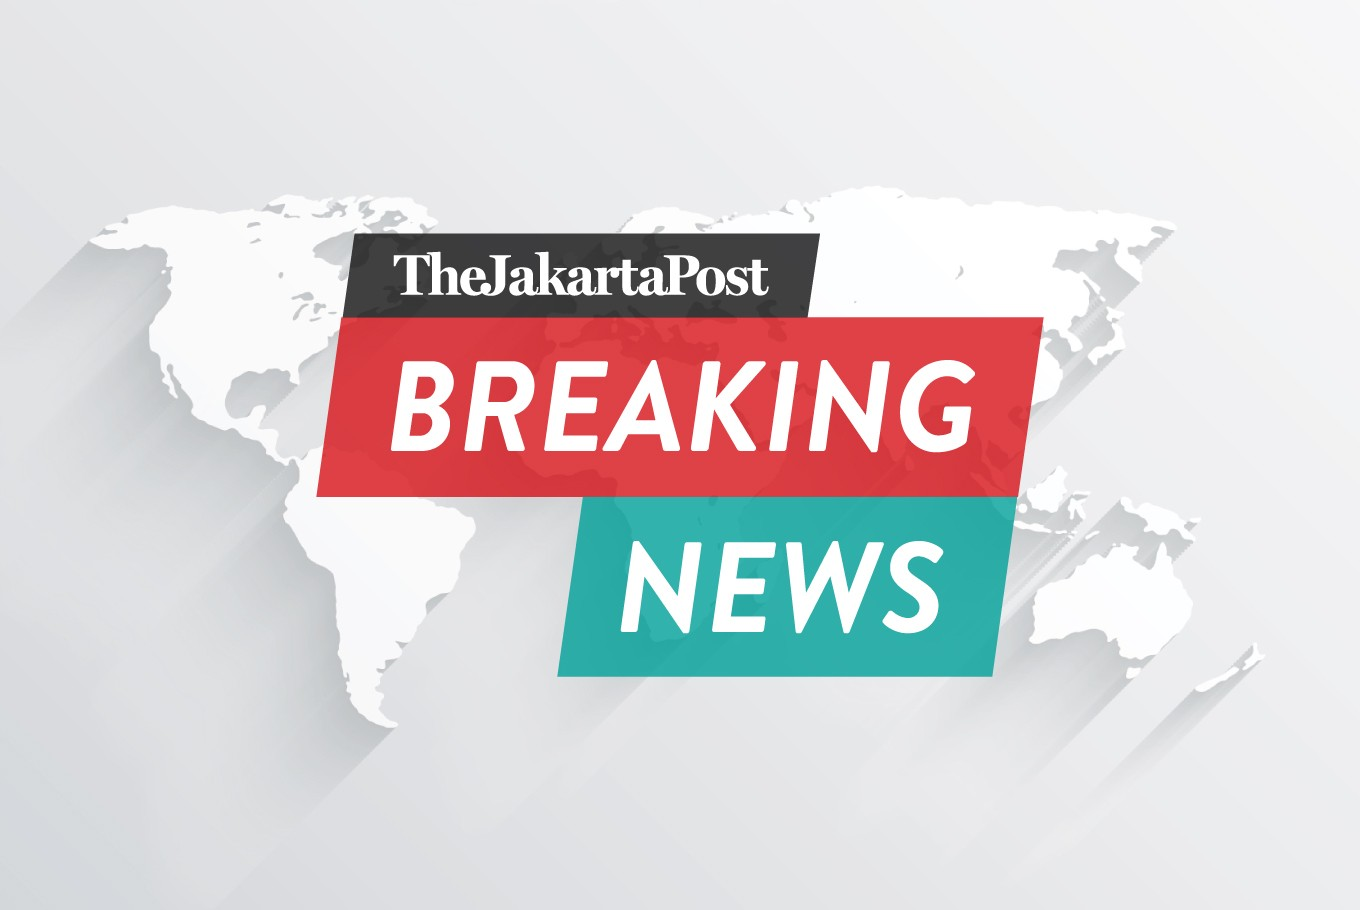 Quake of magnitude 7 strikes Indonesia's island of Sulawesi: USGS